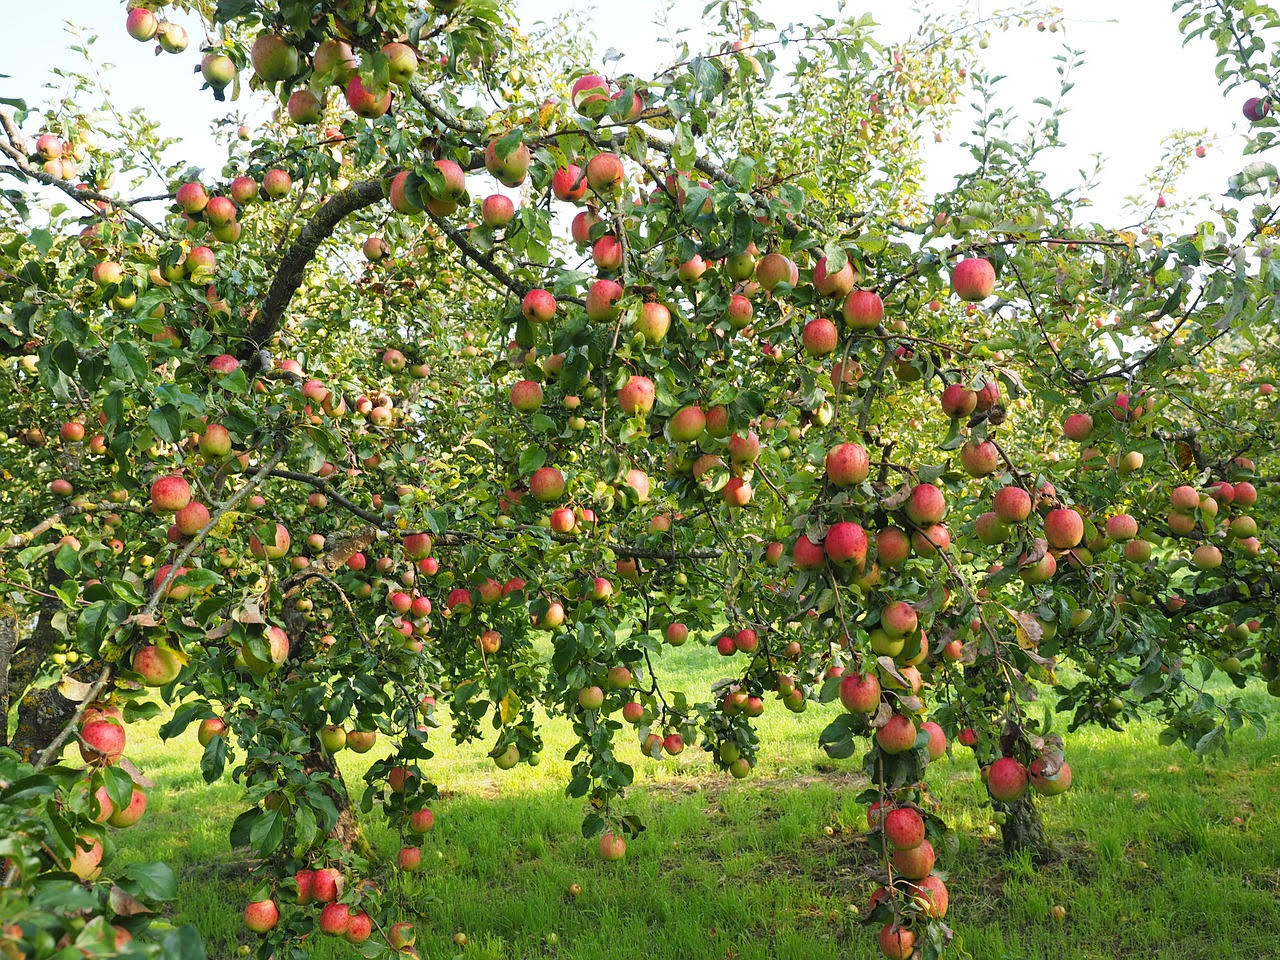 mature apple tree laden with apples